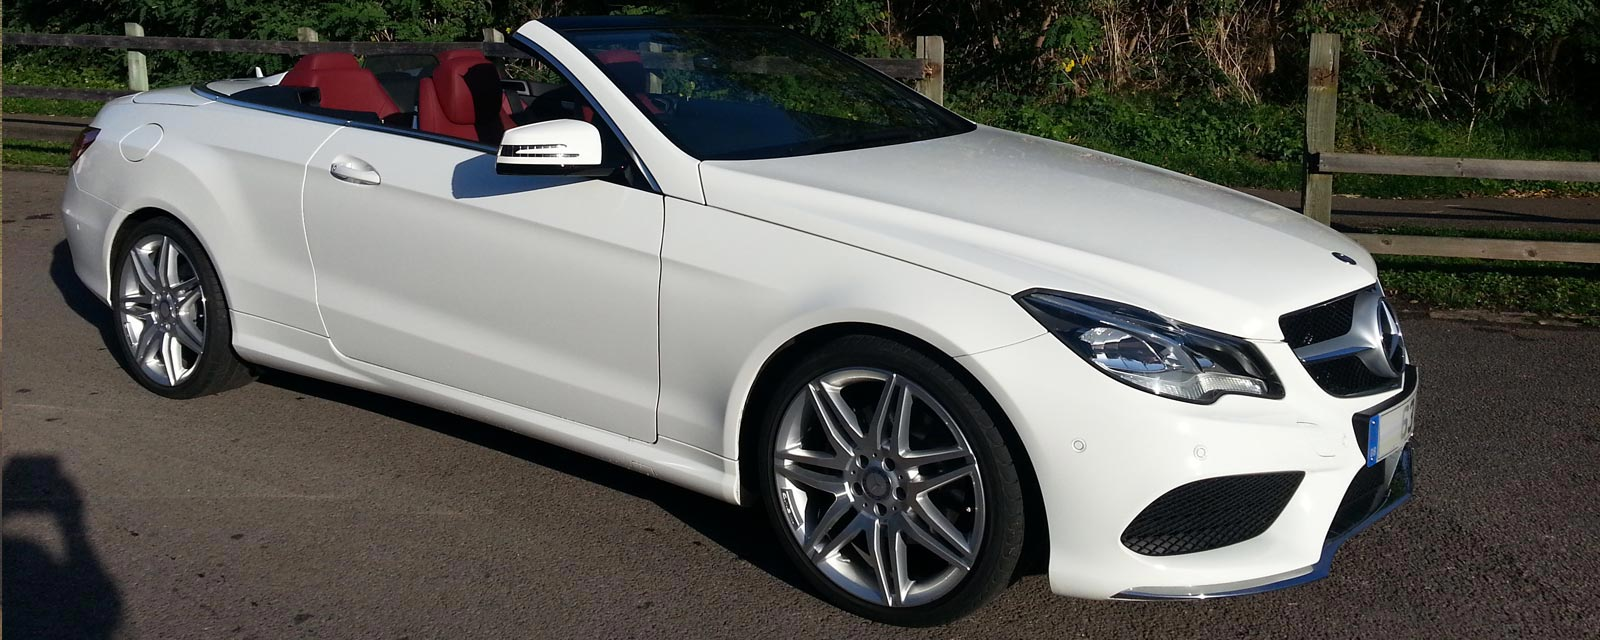 Hire mercedes benz e350 convertible for your wedding for Mercedes benz e350 coupe convertible